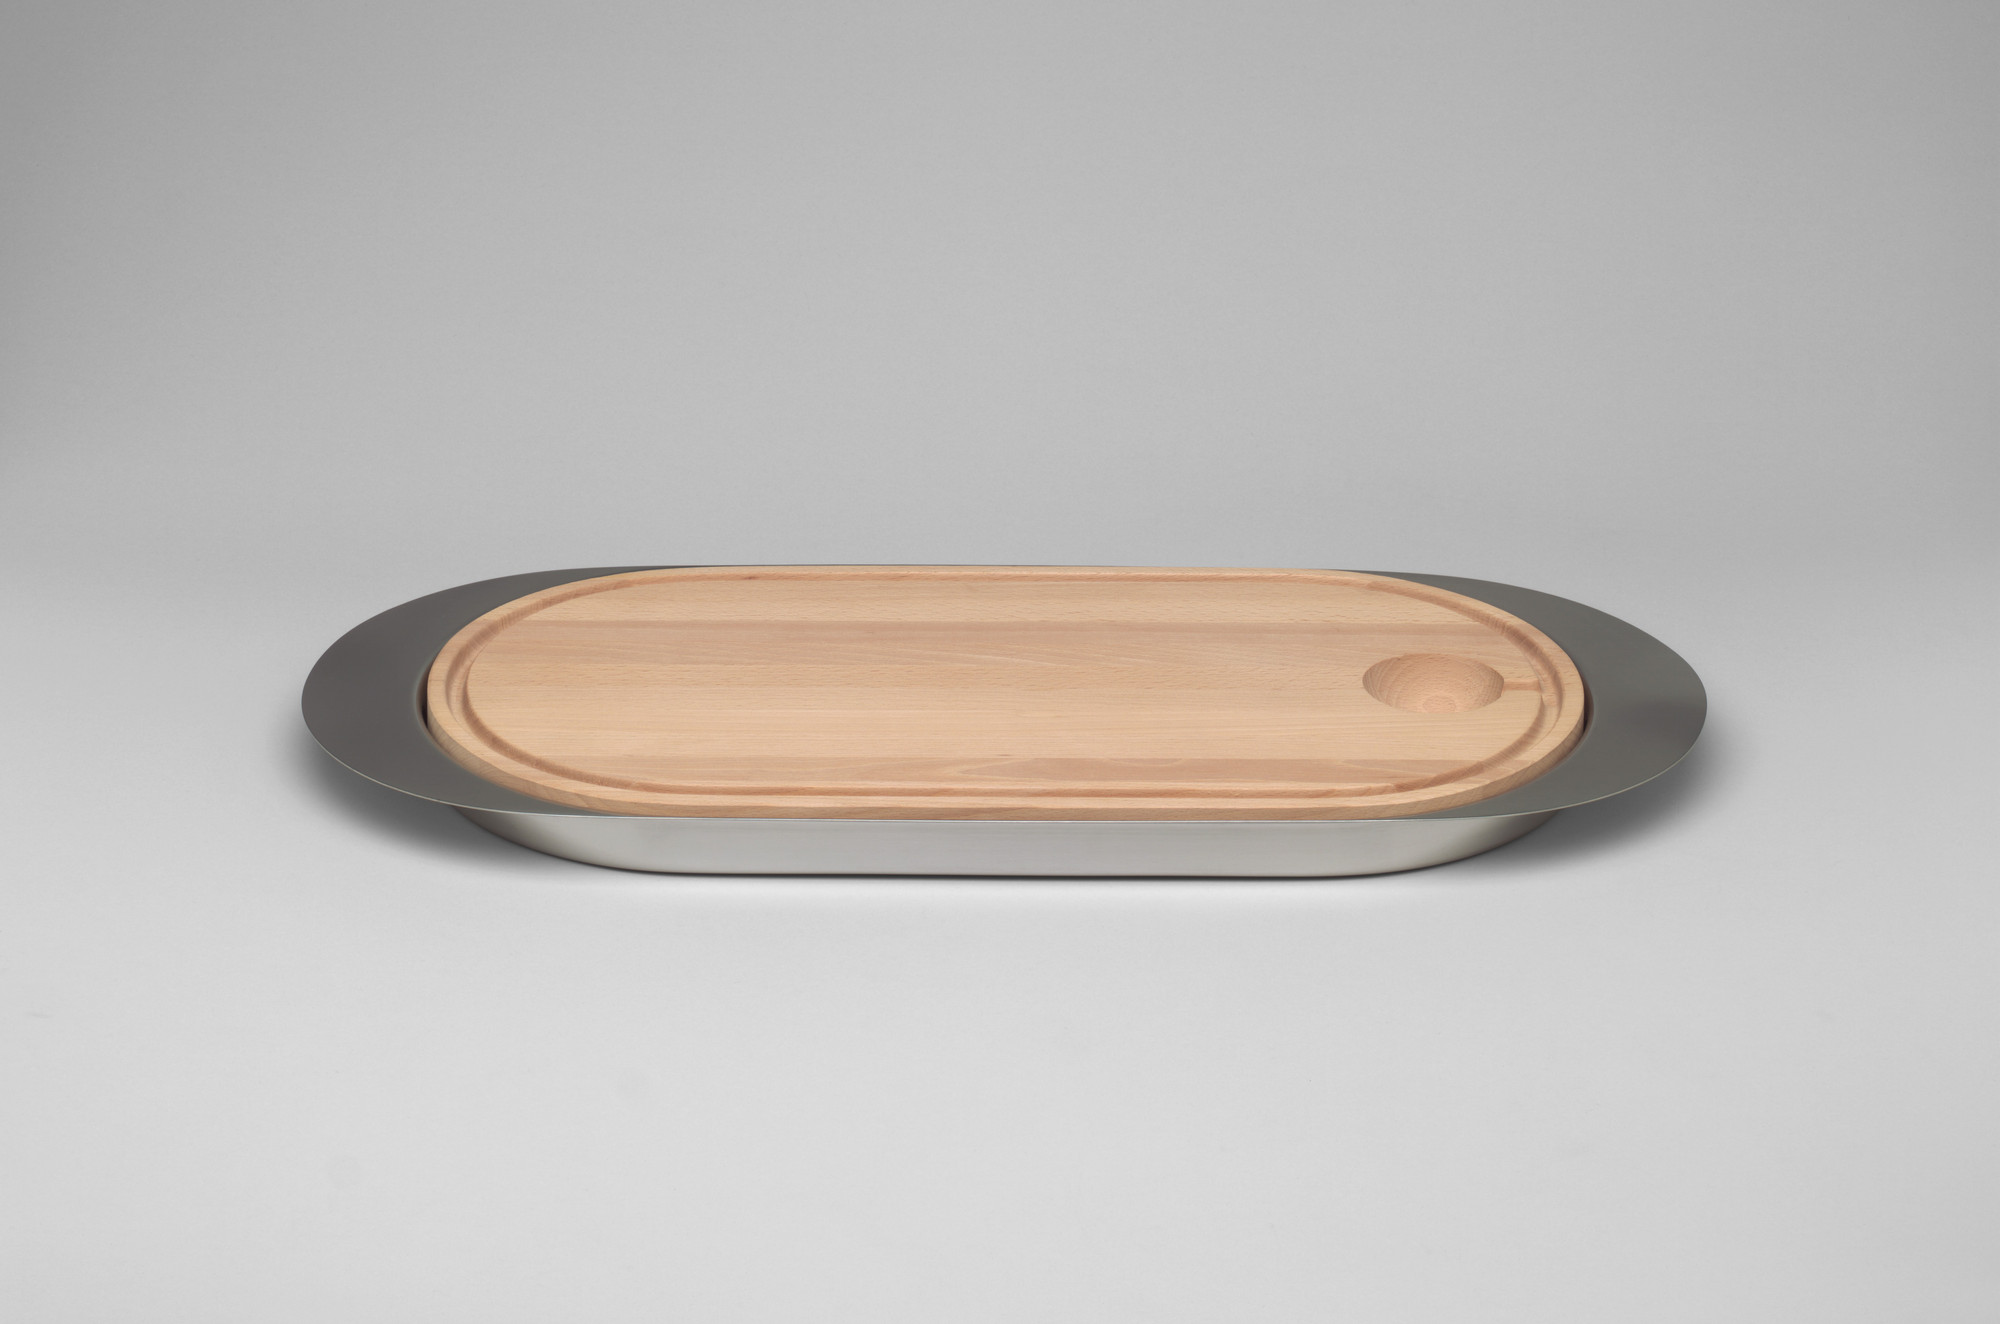 Arne Jacobsen. Multi-set Serving Dish and Carving Board. 1970